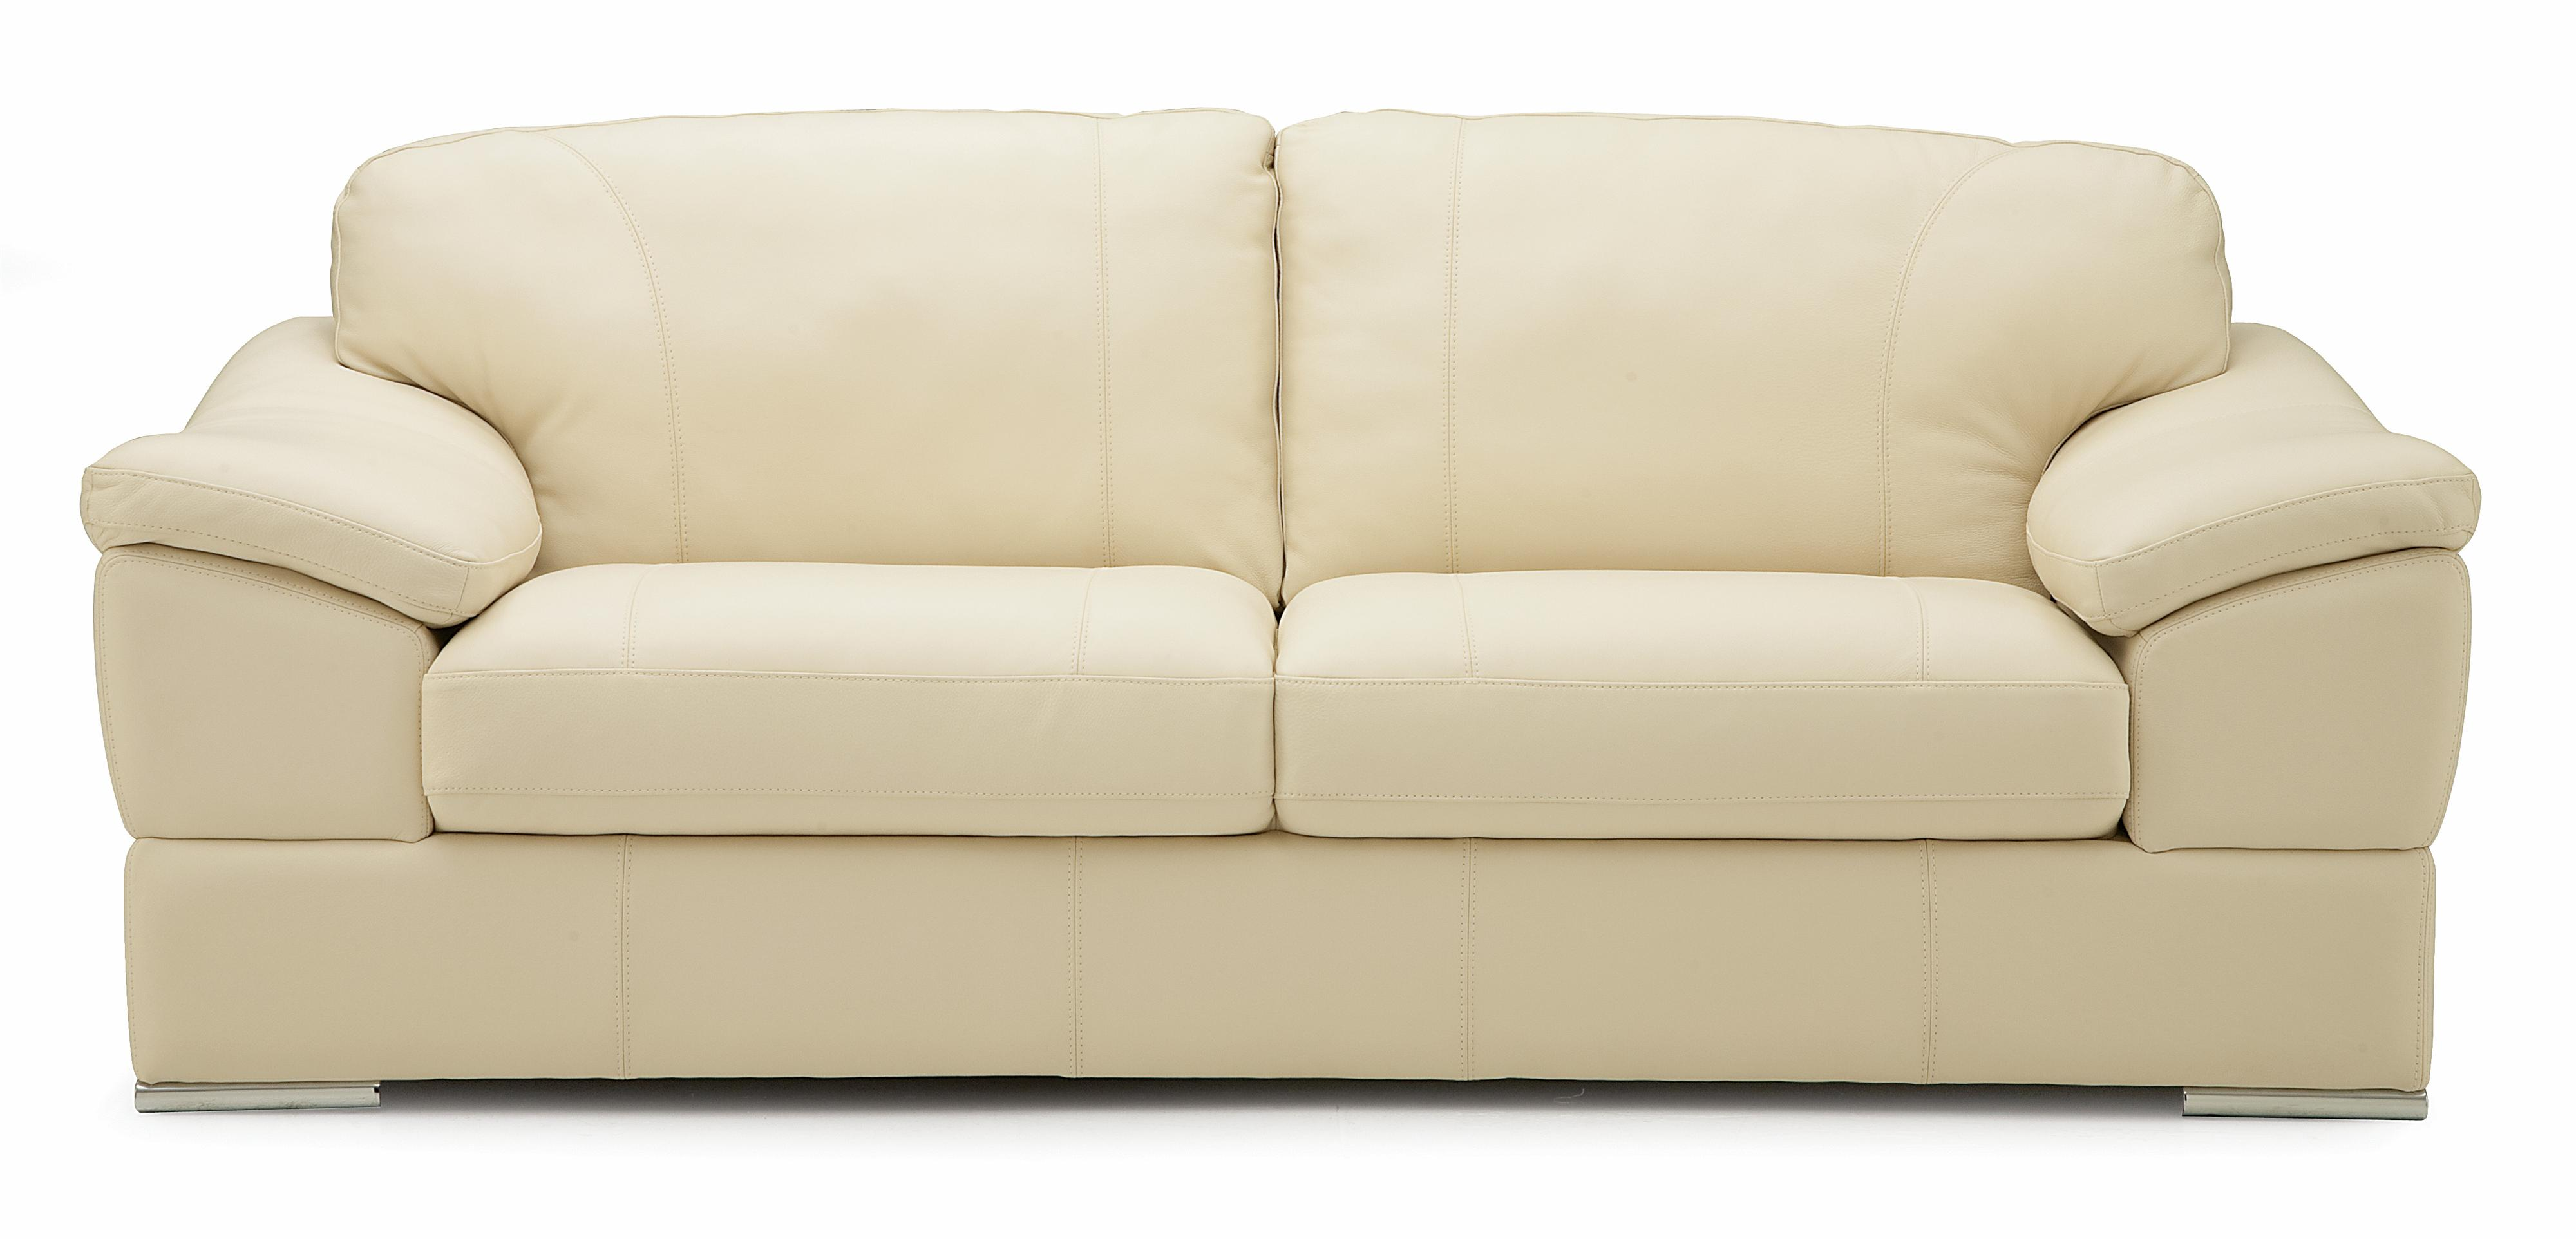 palliser stationary sofas sofa bed studio flat acapulco casual with pillow arms olinde 39s